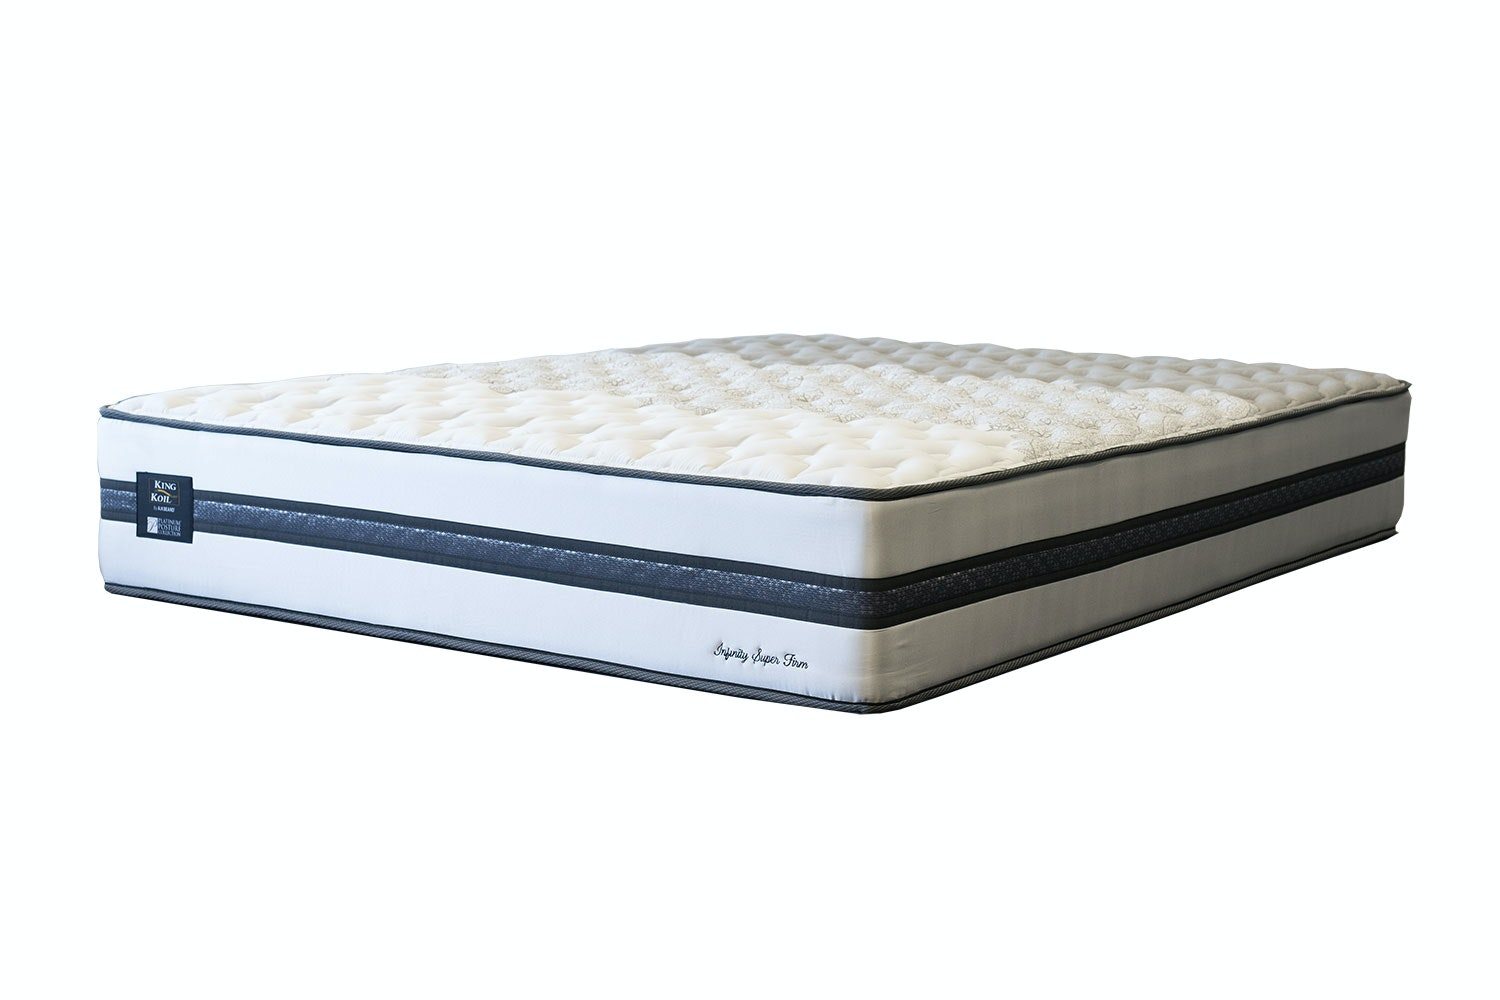 Infinity Super Firm Queen Mattress by King Koil